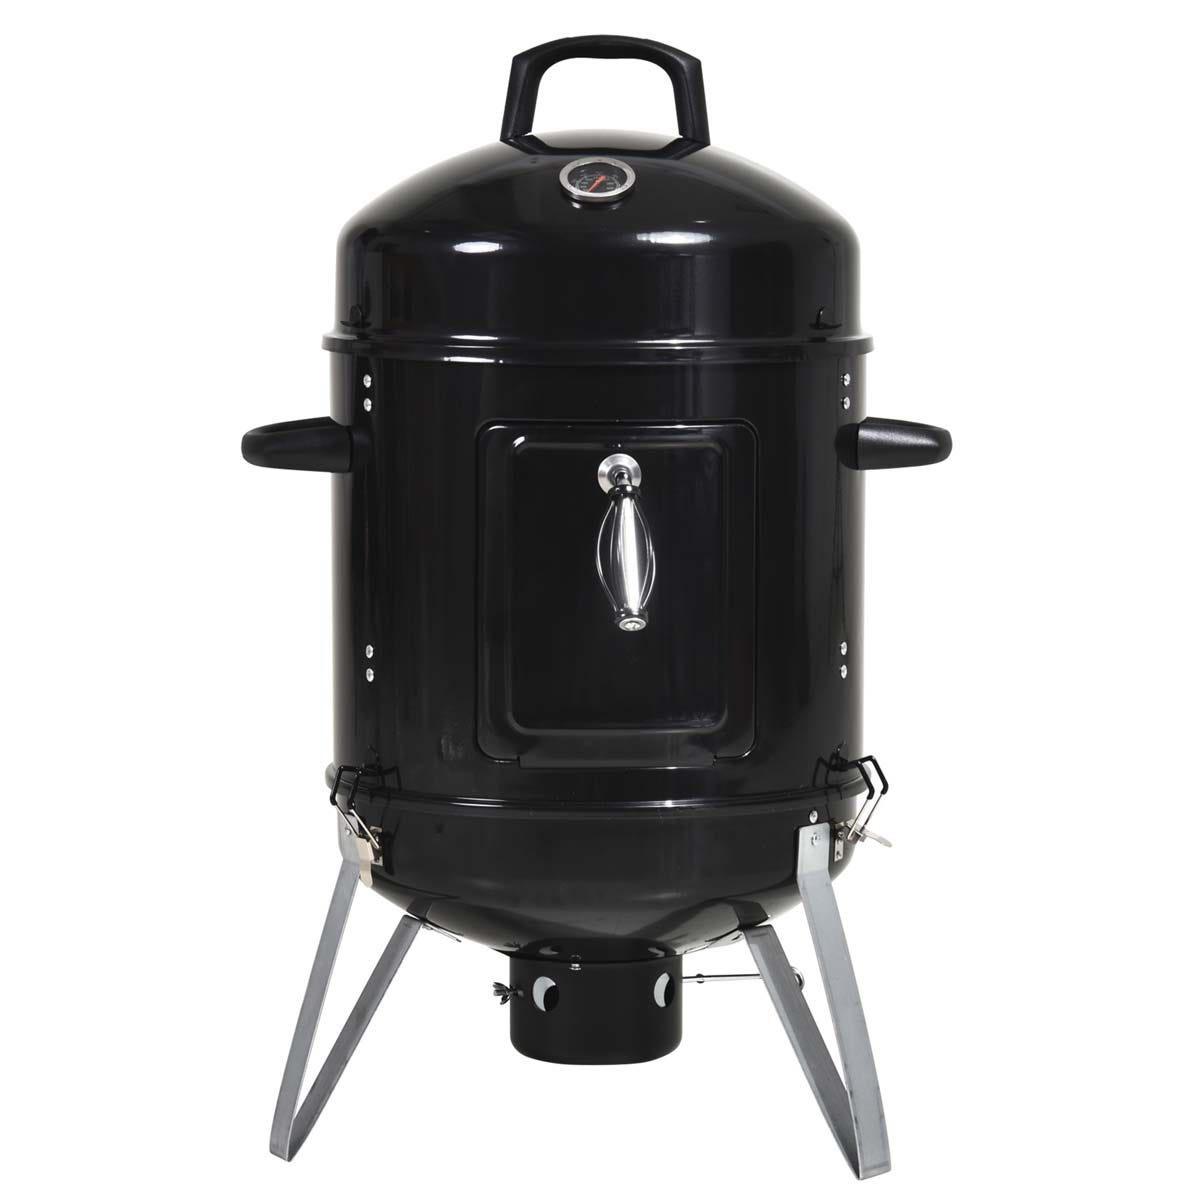 Outsunny 3 in 1 Charcoal Smoker BBQ Grill